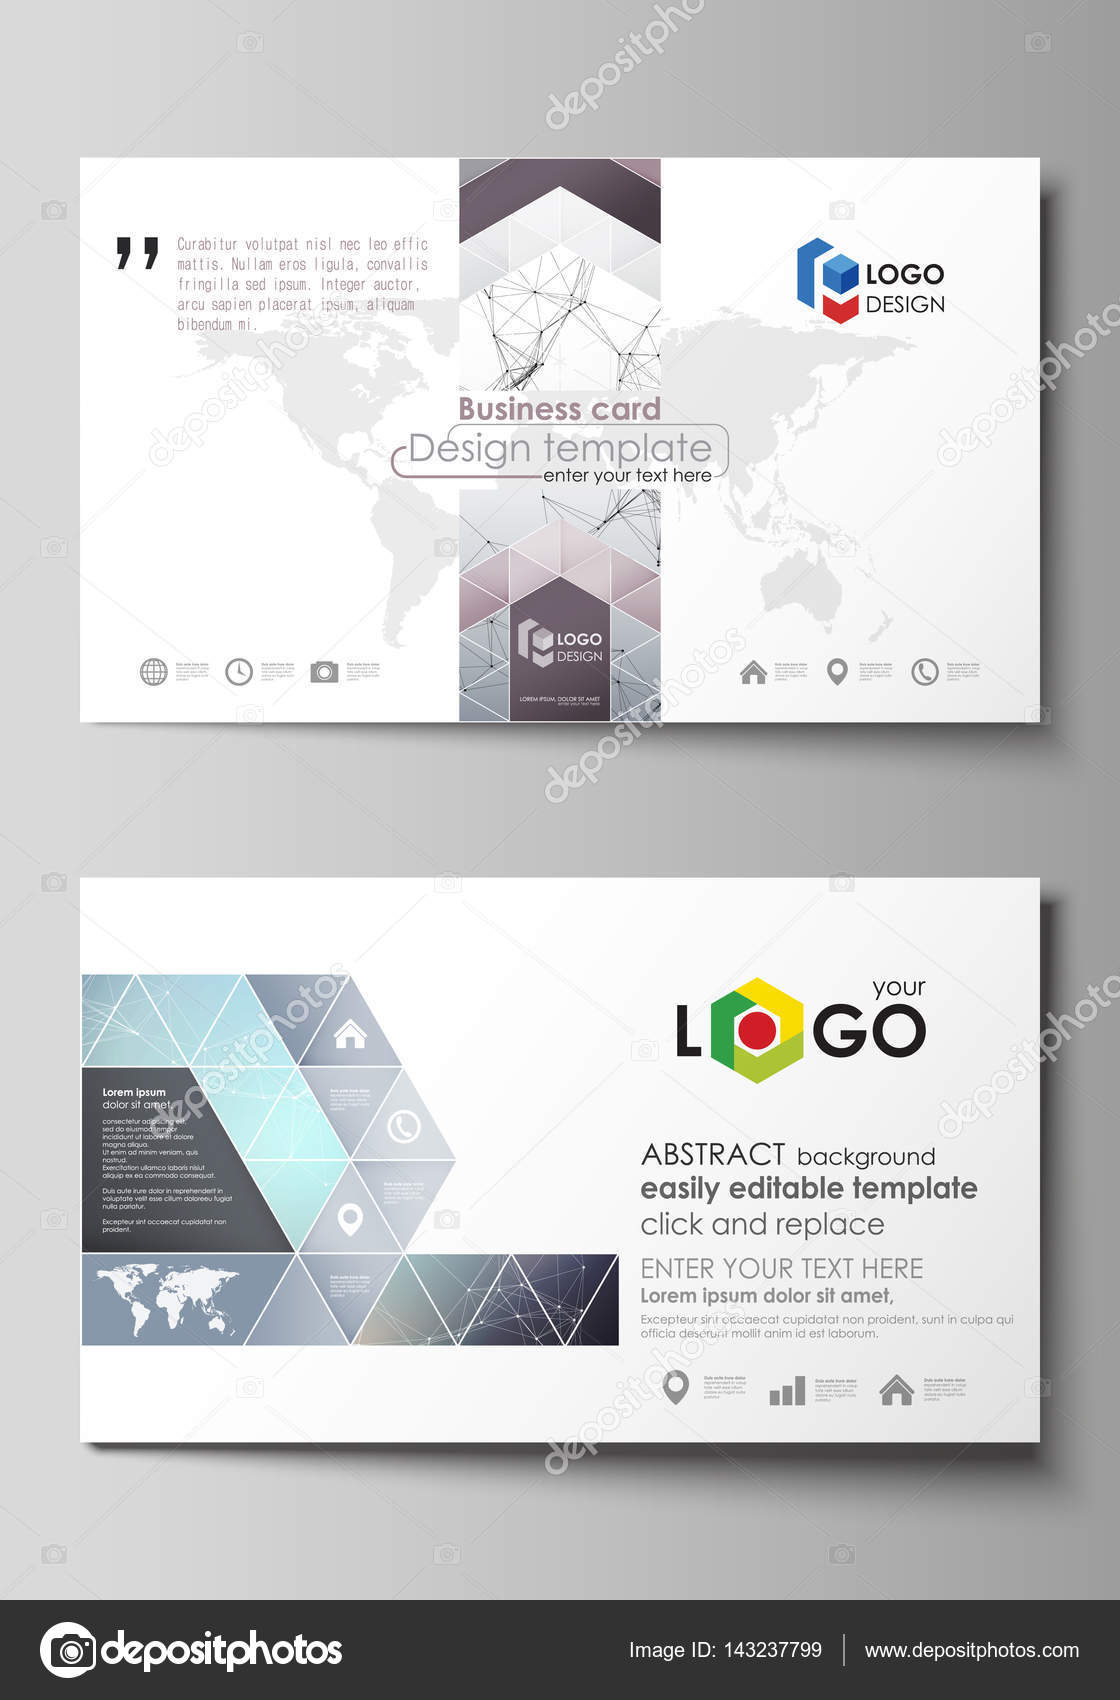 Business card templates easy editable layout abstract vector business card templates easy editable layout abstract vector design template compounds lines and dots big data visualization in minimal style alramifo Images